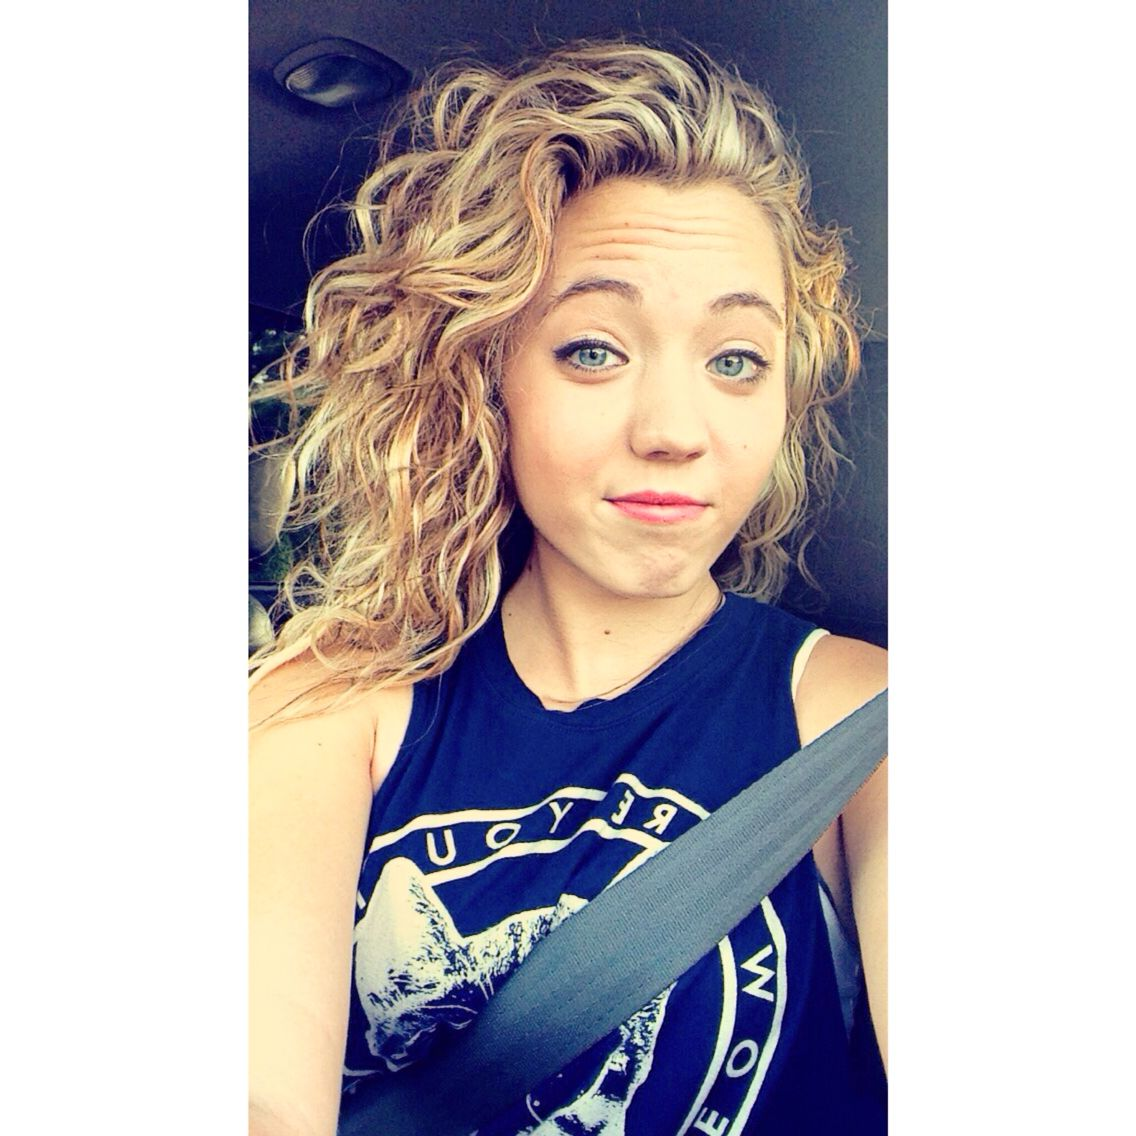 White Girl Naturally Curly Hair Blonde Curly Natural Curly Hair Styles Permed Hairstyles Curly Hair Styles Naturally